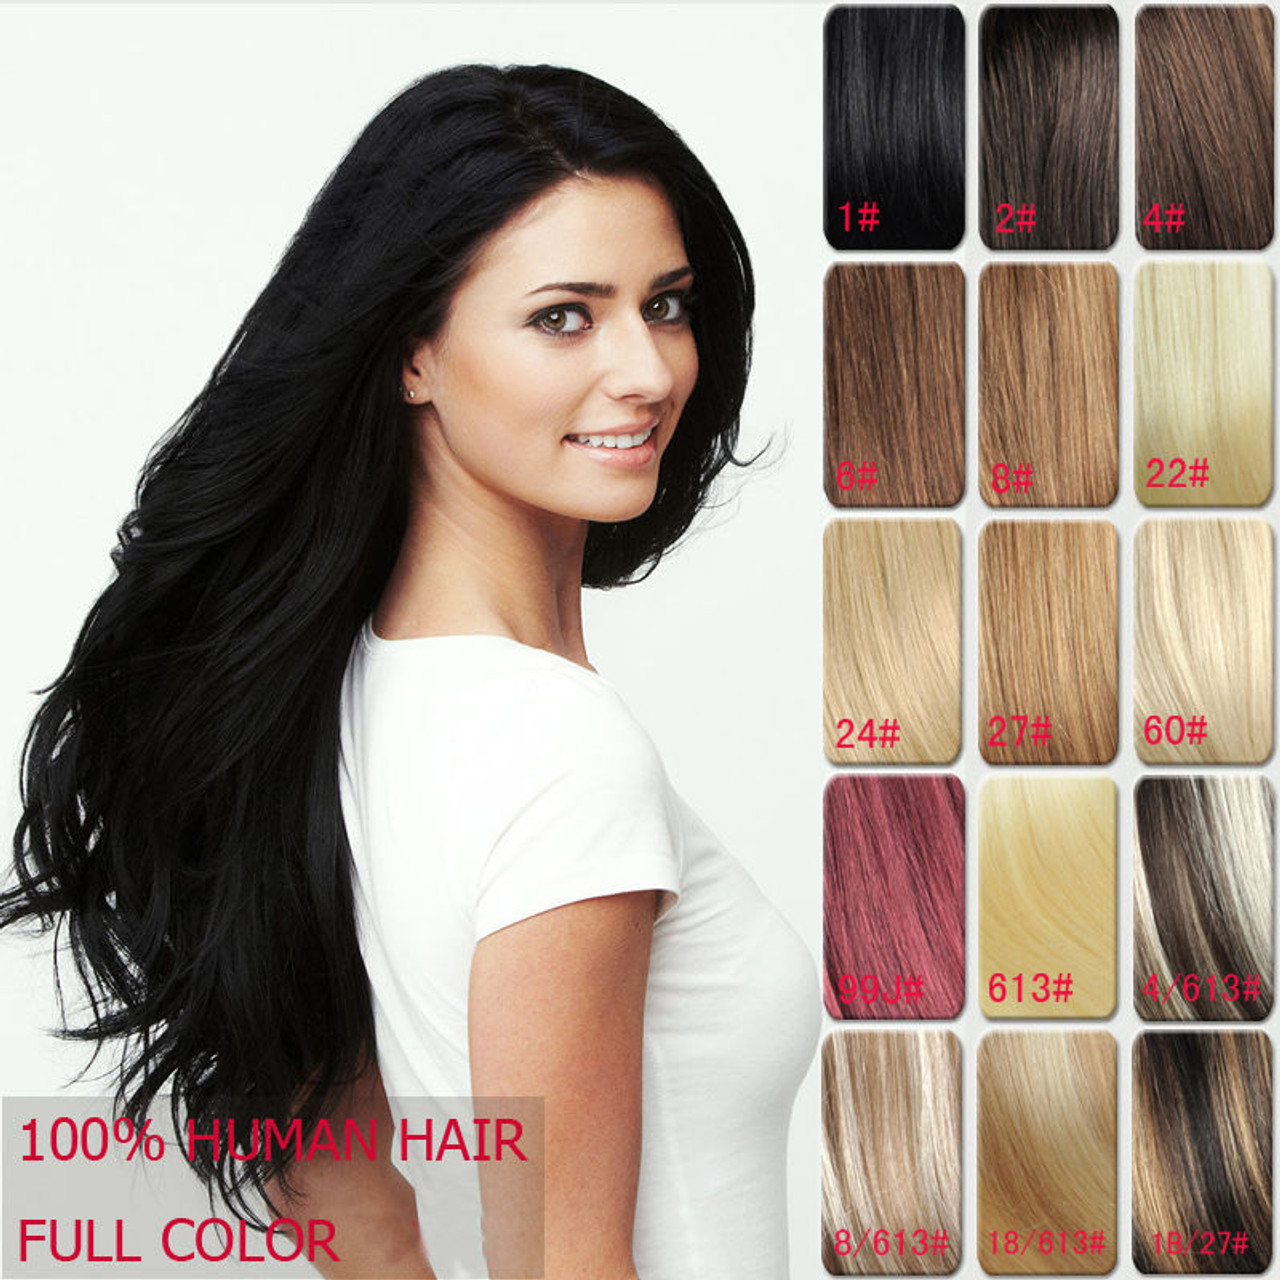 Piece 5 clip in remy human hair extensions super thick straight one piece 5 clip in remy human hair extensions super thick straight 20inch 120g 27cm width pmusecretfo Images